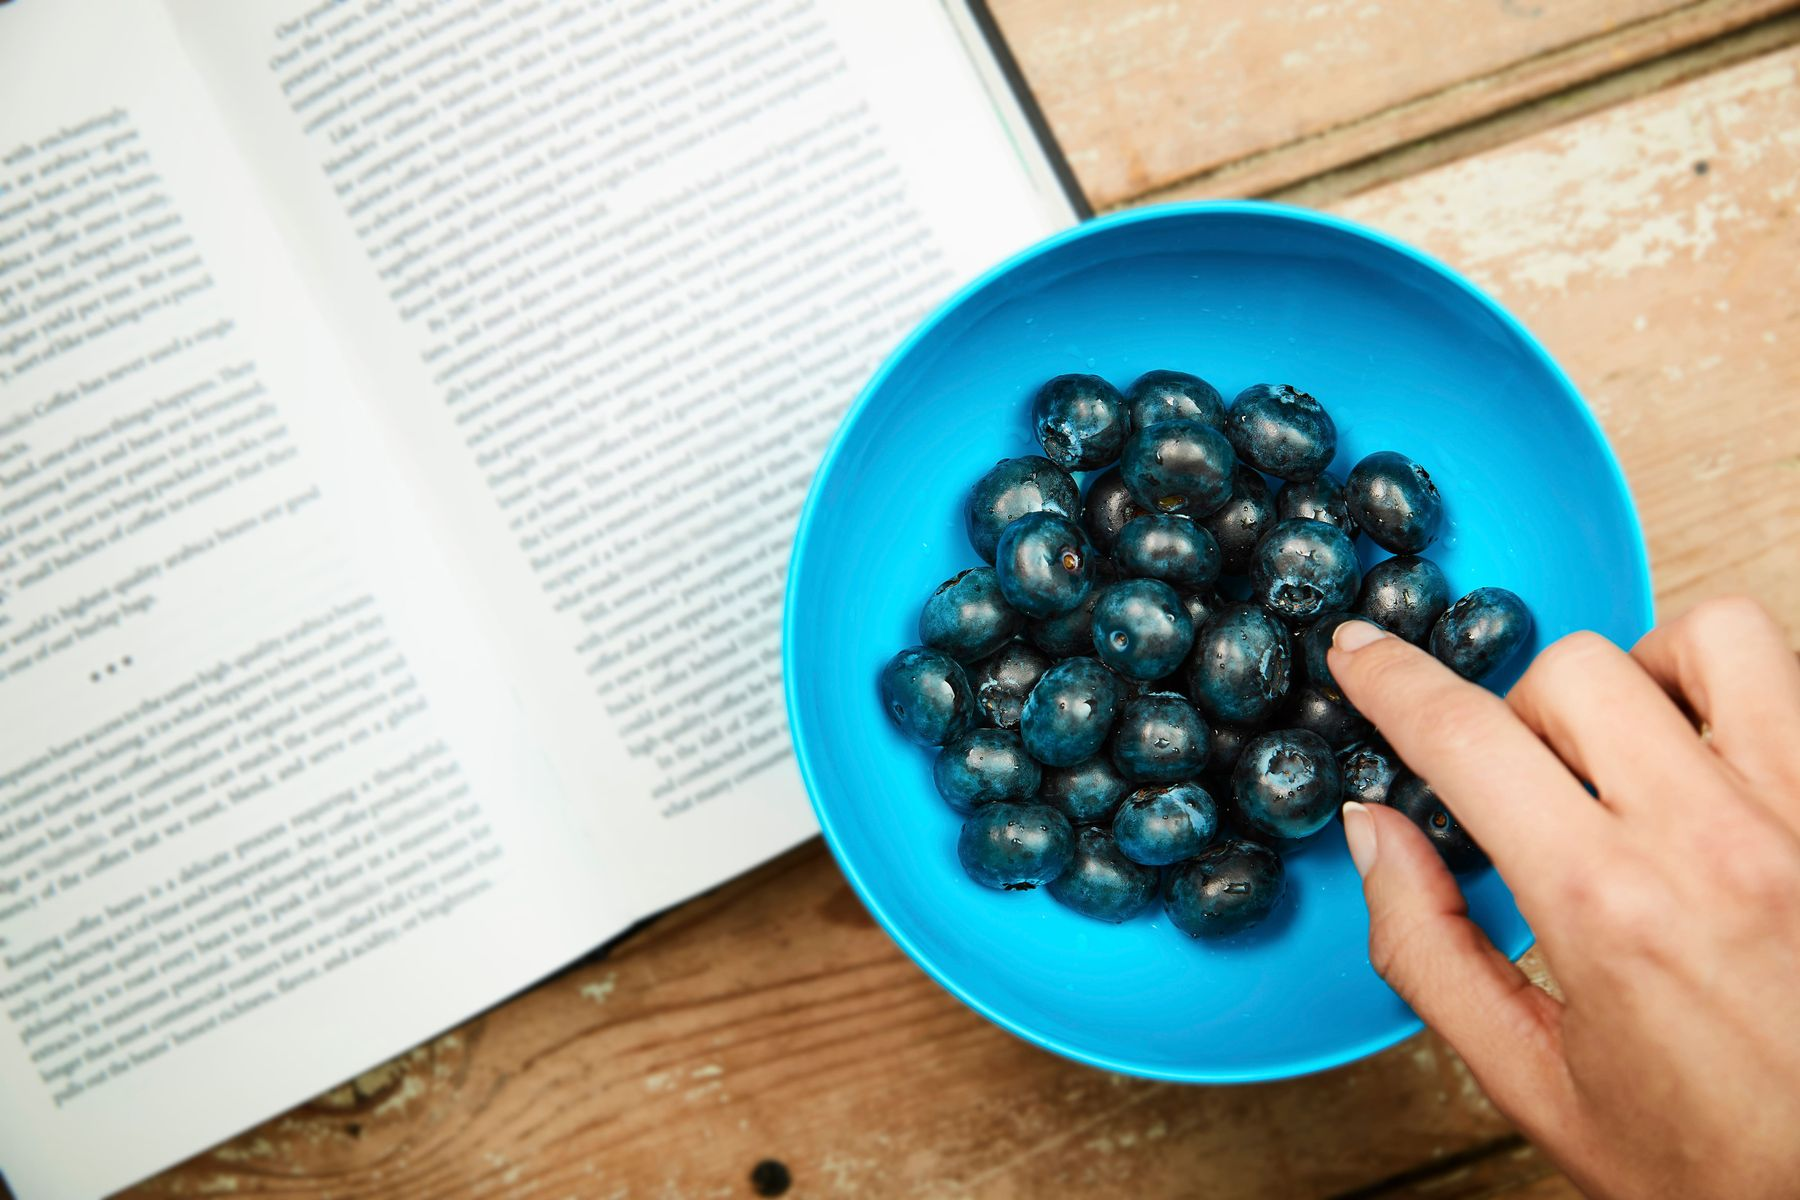 bowl of blueberries above open book on wooden surface